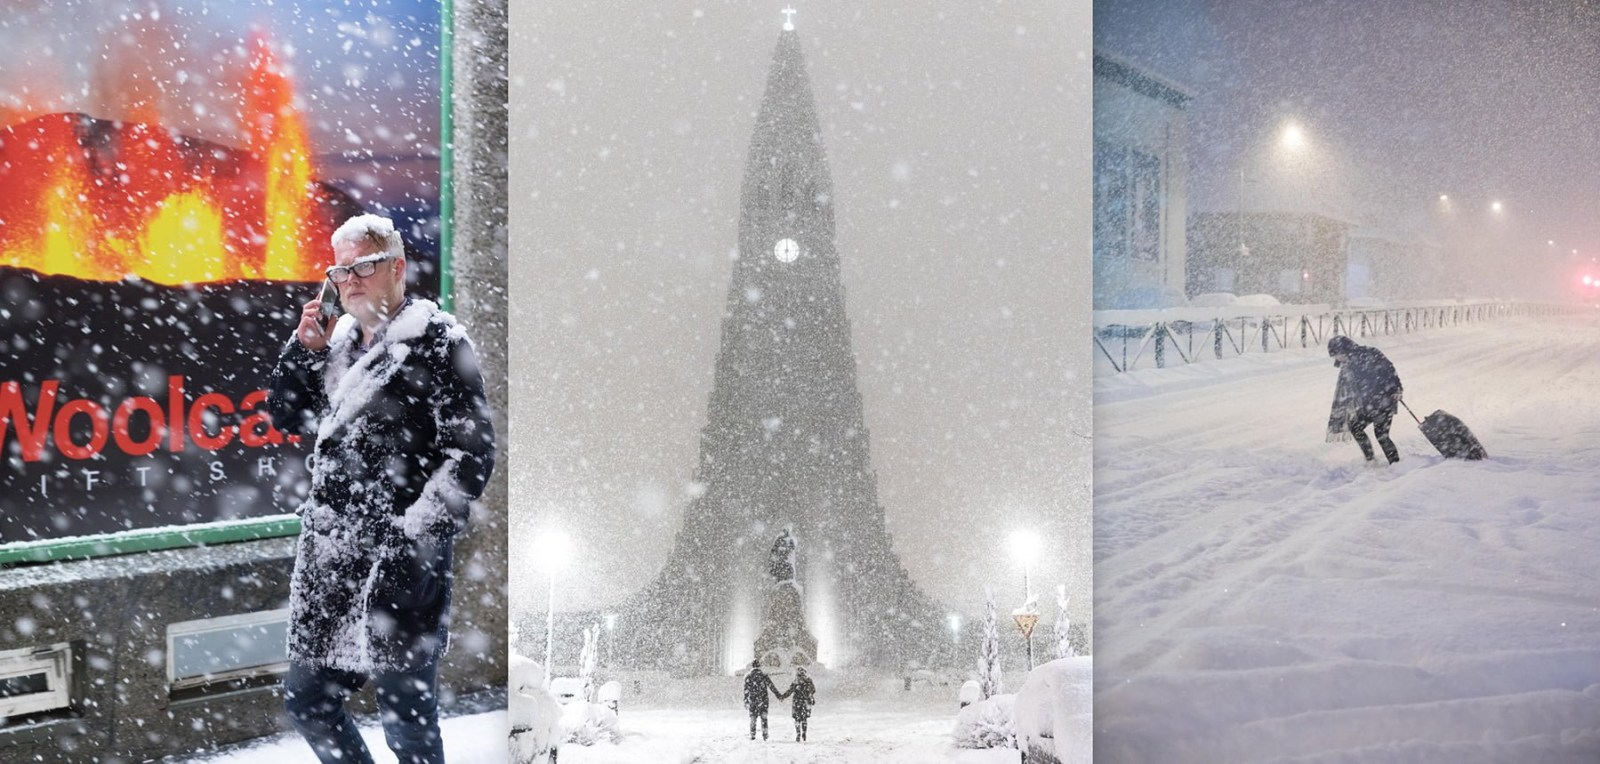 The Photographer Who Captured Snowmageddon As It Happened